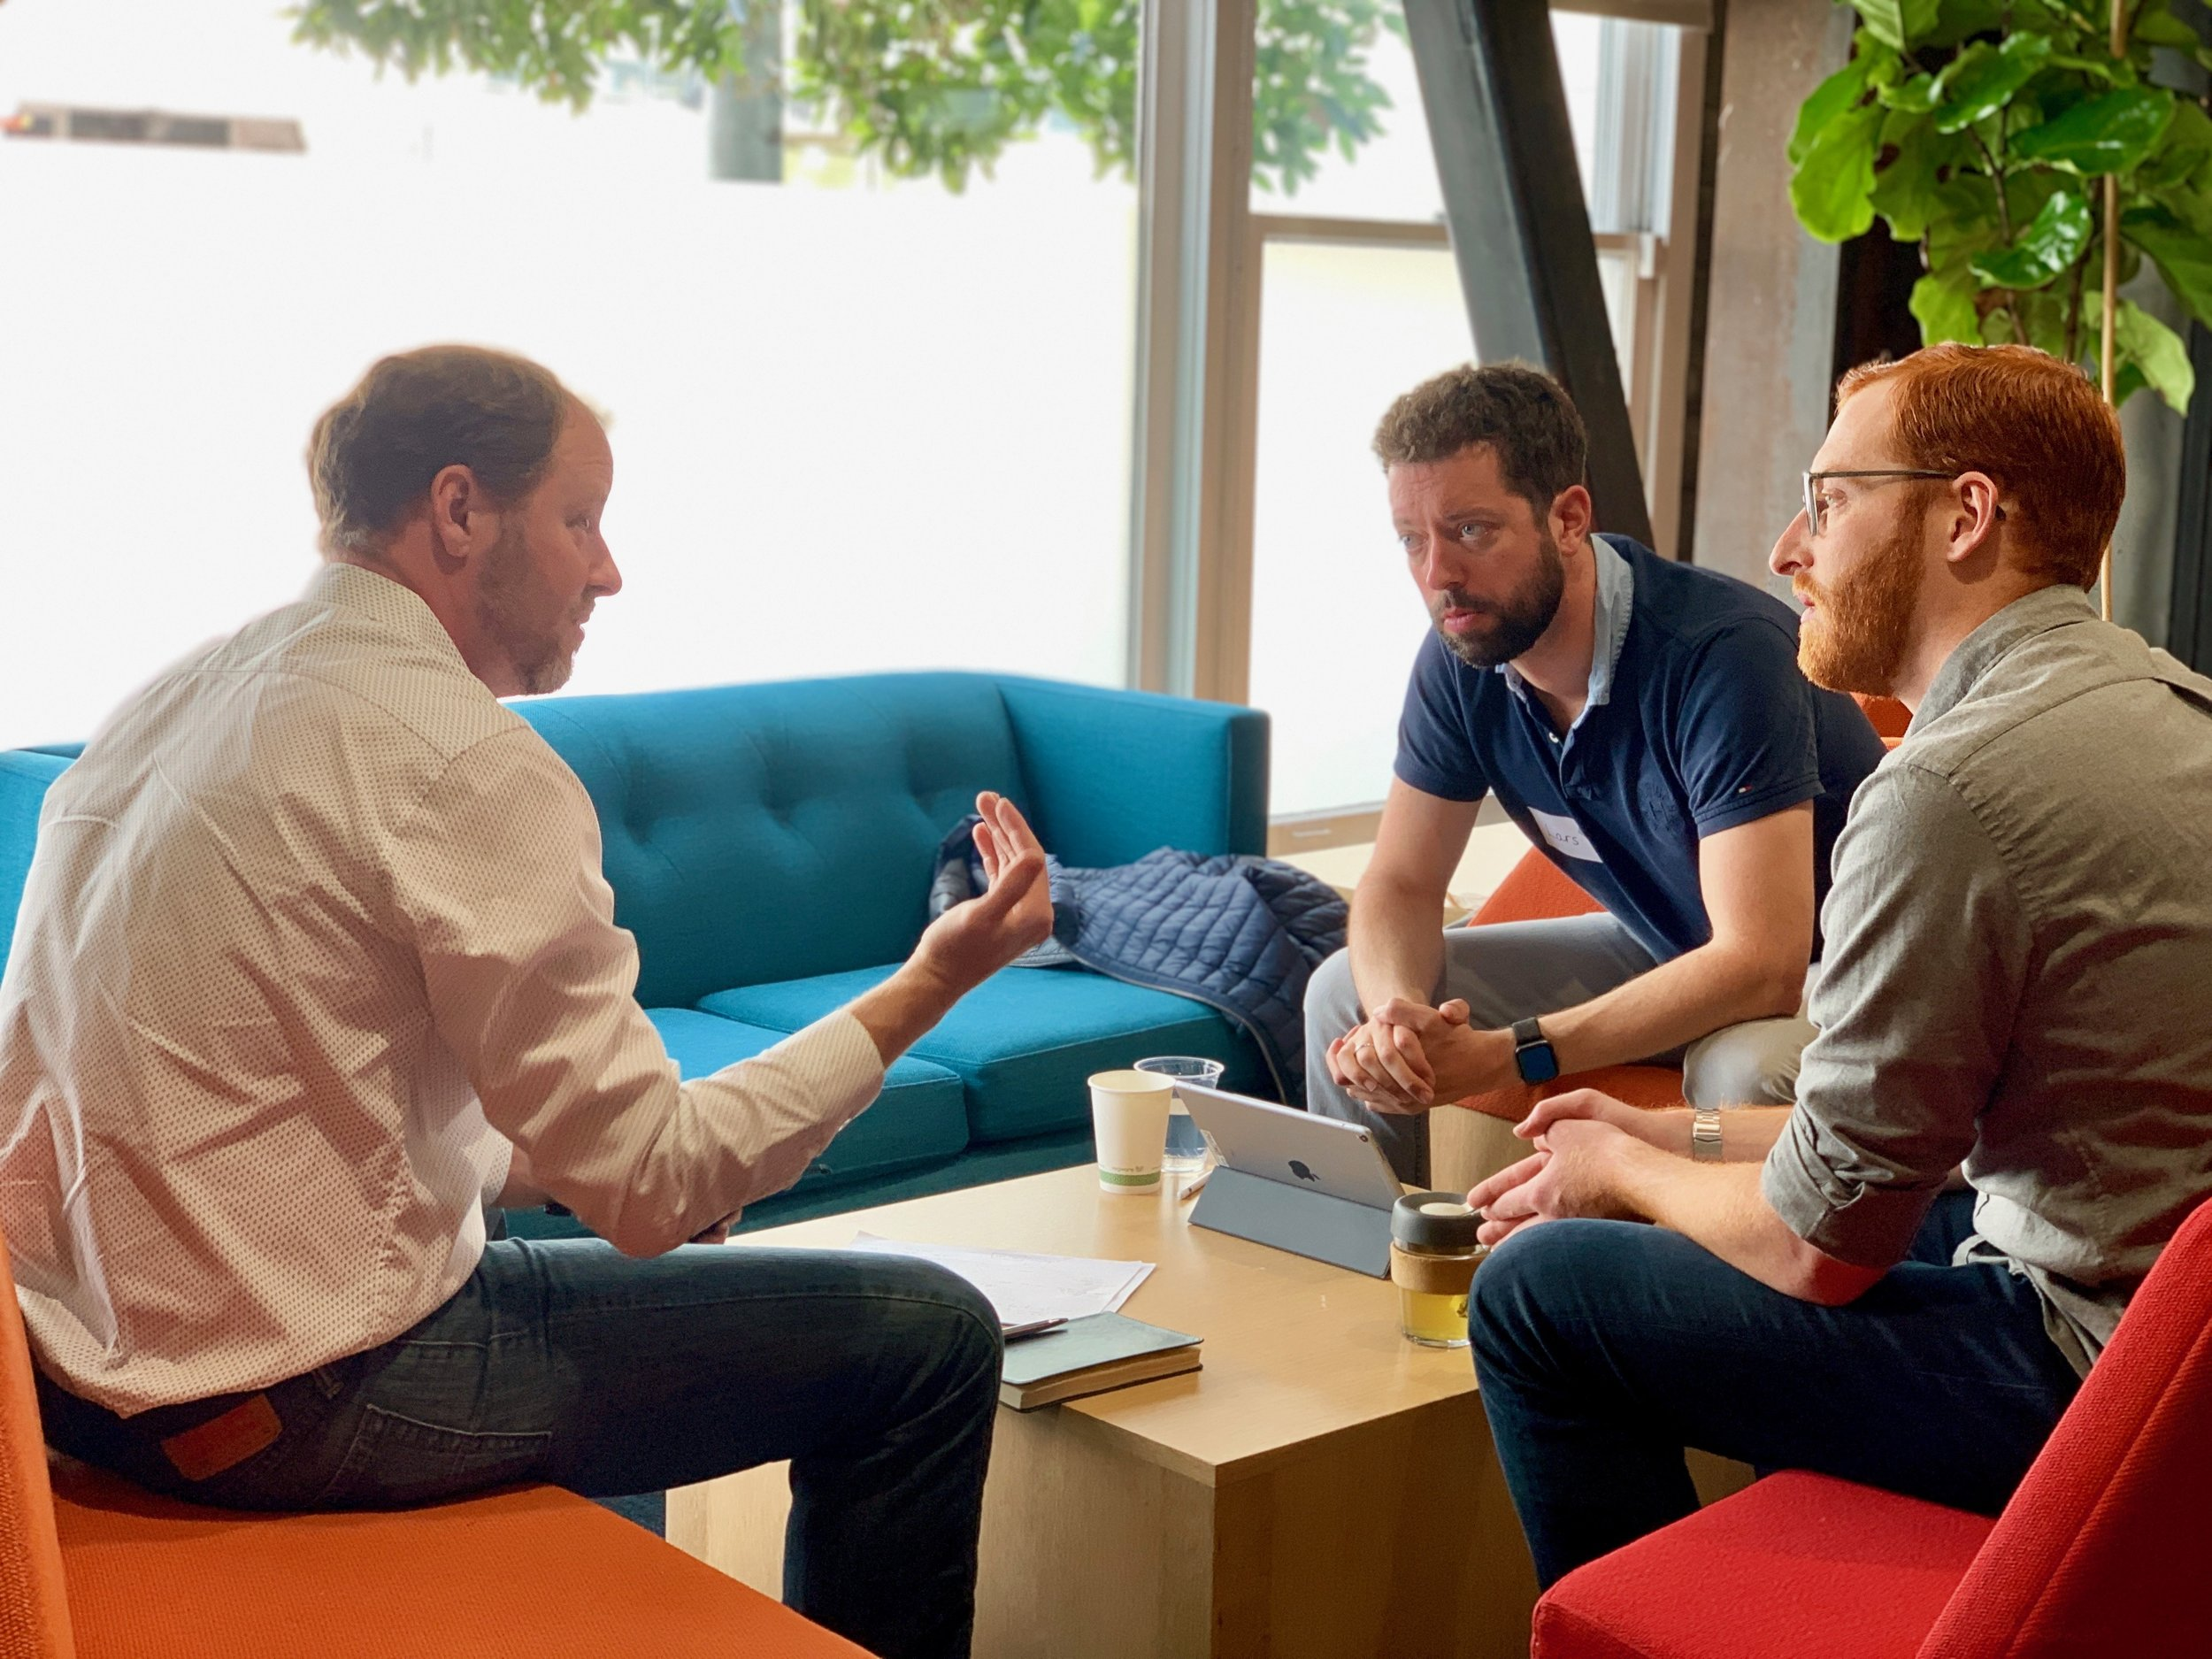 MAN Impact Accelerator social entrepreneur  Noah Perin  from  VIA Global Health  sitting with his lead mentor  Dr. Lars Eiermann  from MAN Truck & Bus and his tech mentor   Stephen Morseman   from Uber.